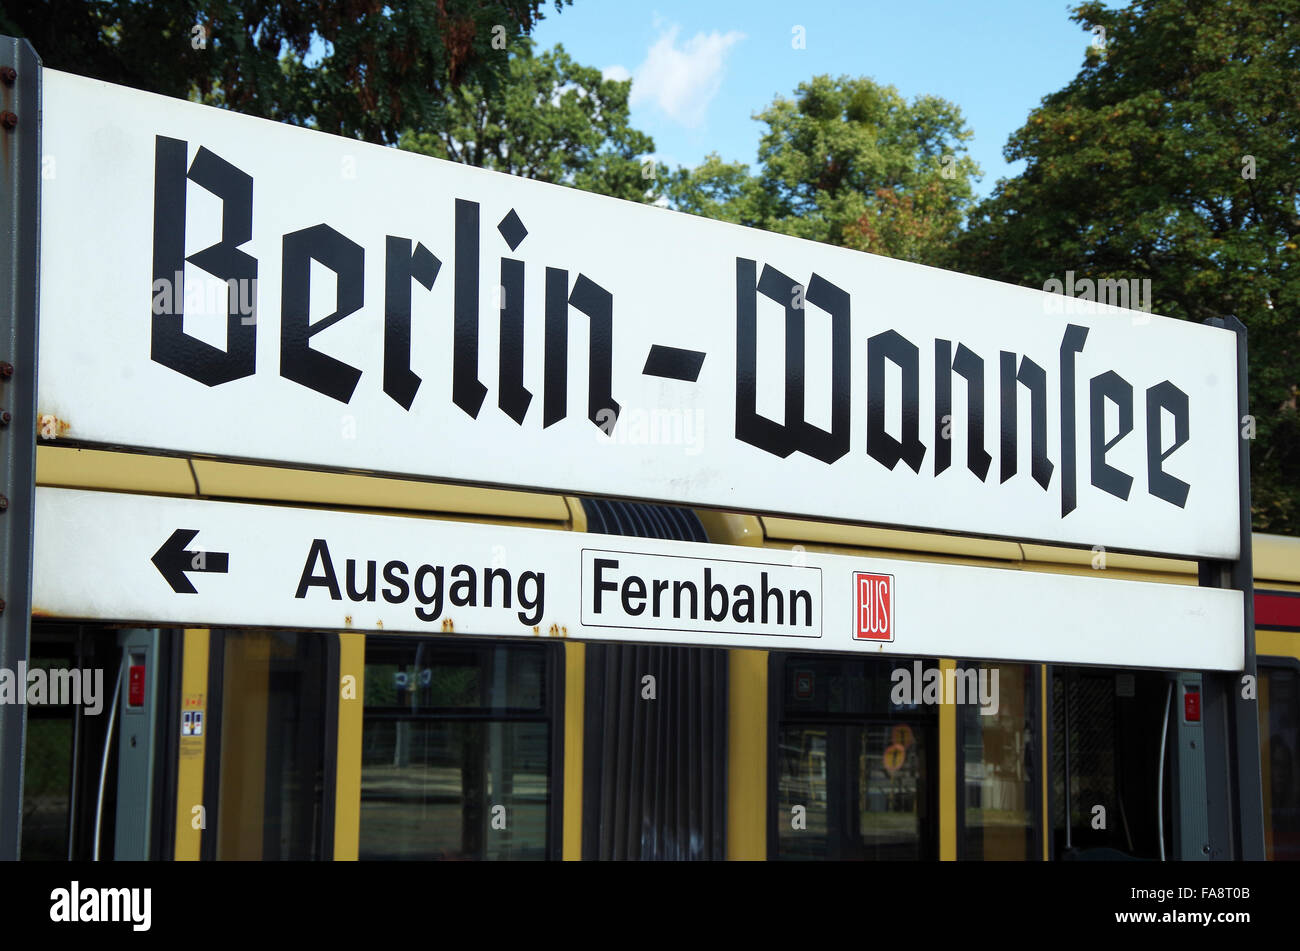 Berlin Gothic Berlin Wannsee Railway Station Sign Gothic Script Stock Photo